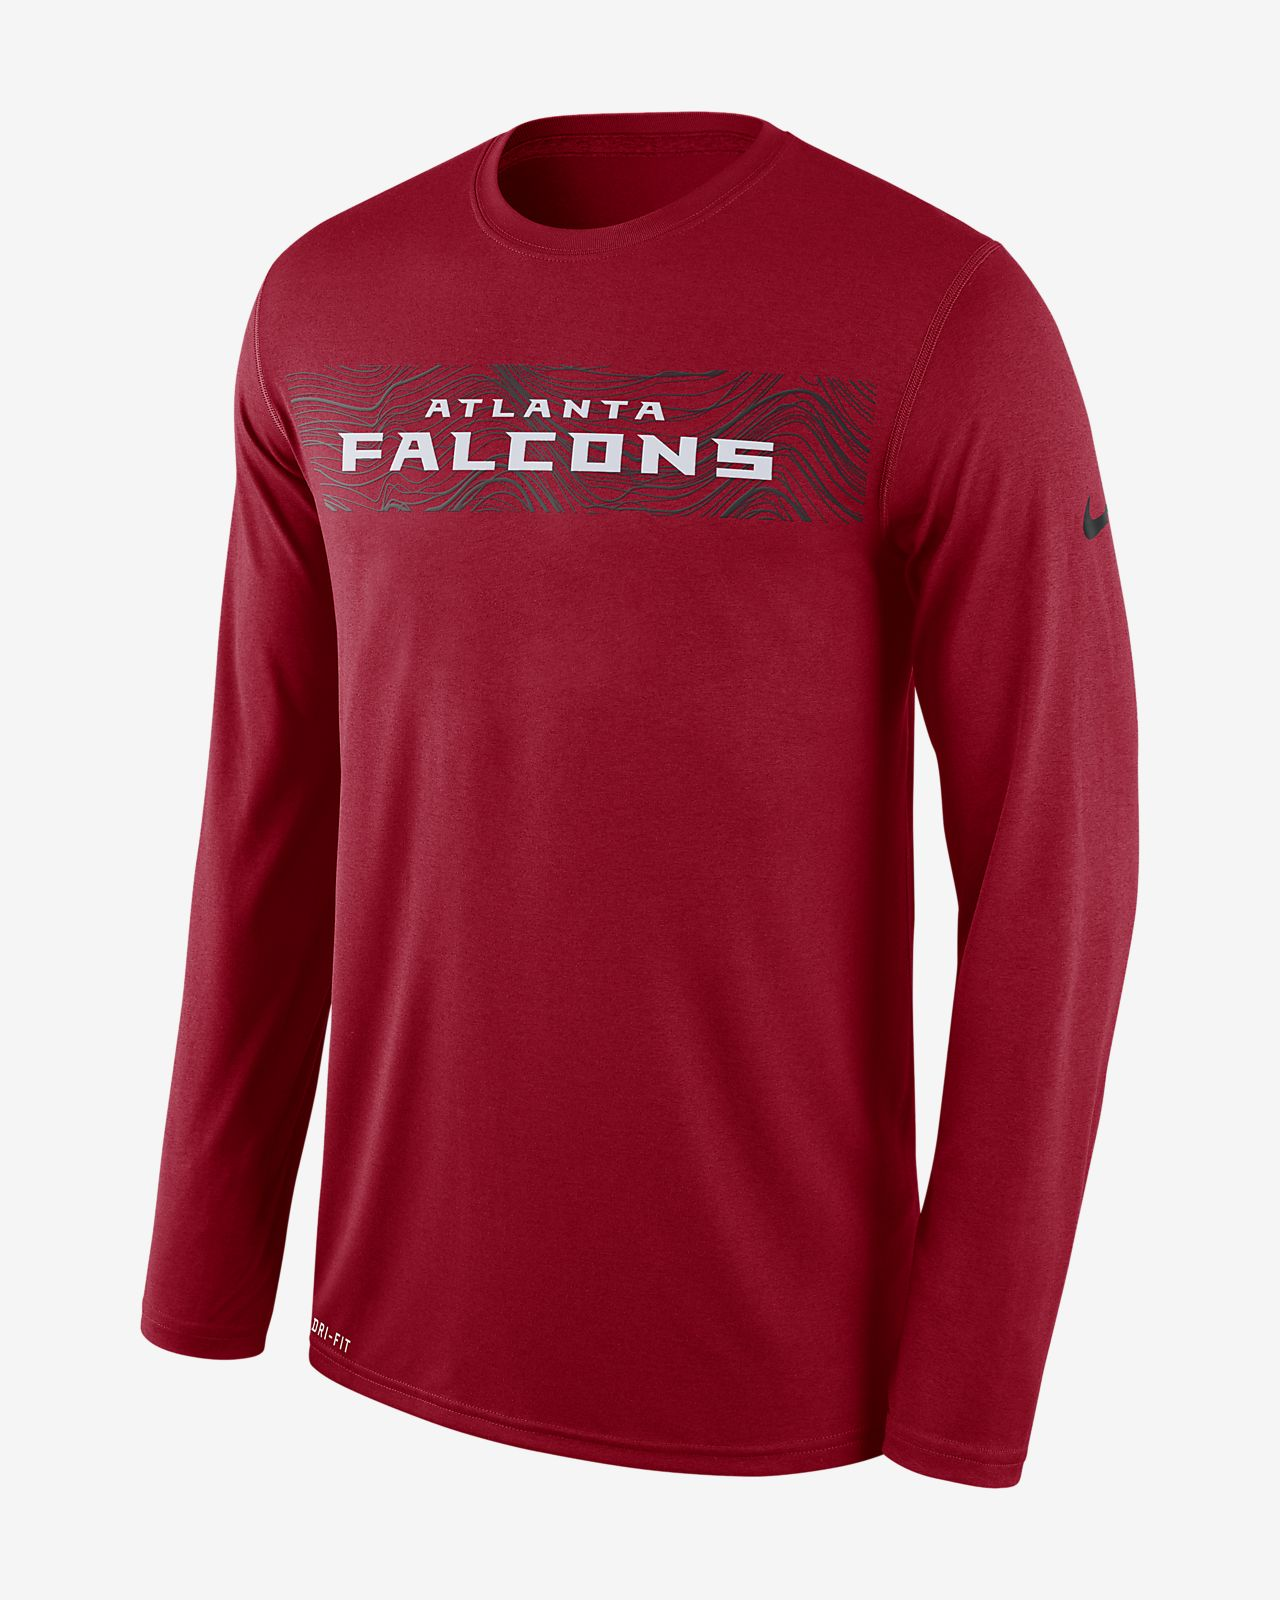 Nike Dri-FIT Legend Seismic (NFL Falcons) Men s Long Sleeve T-Shirt ... 42ab3f146d91